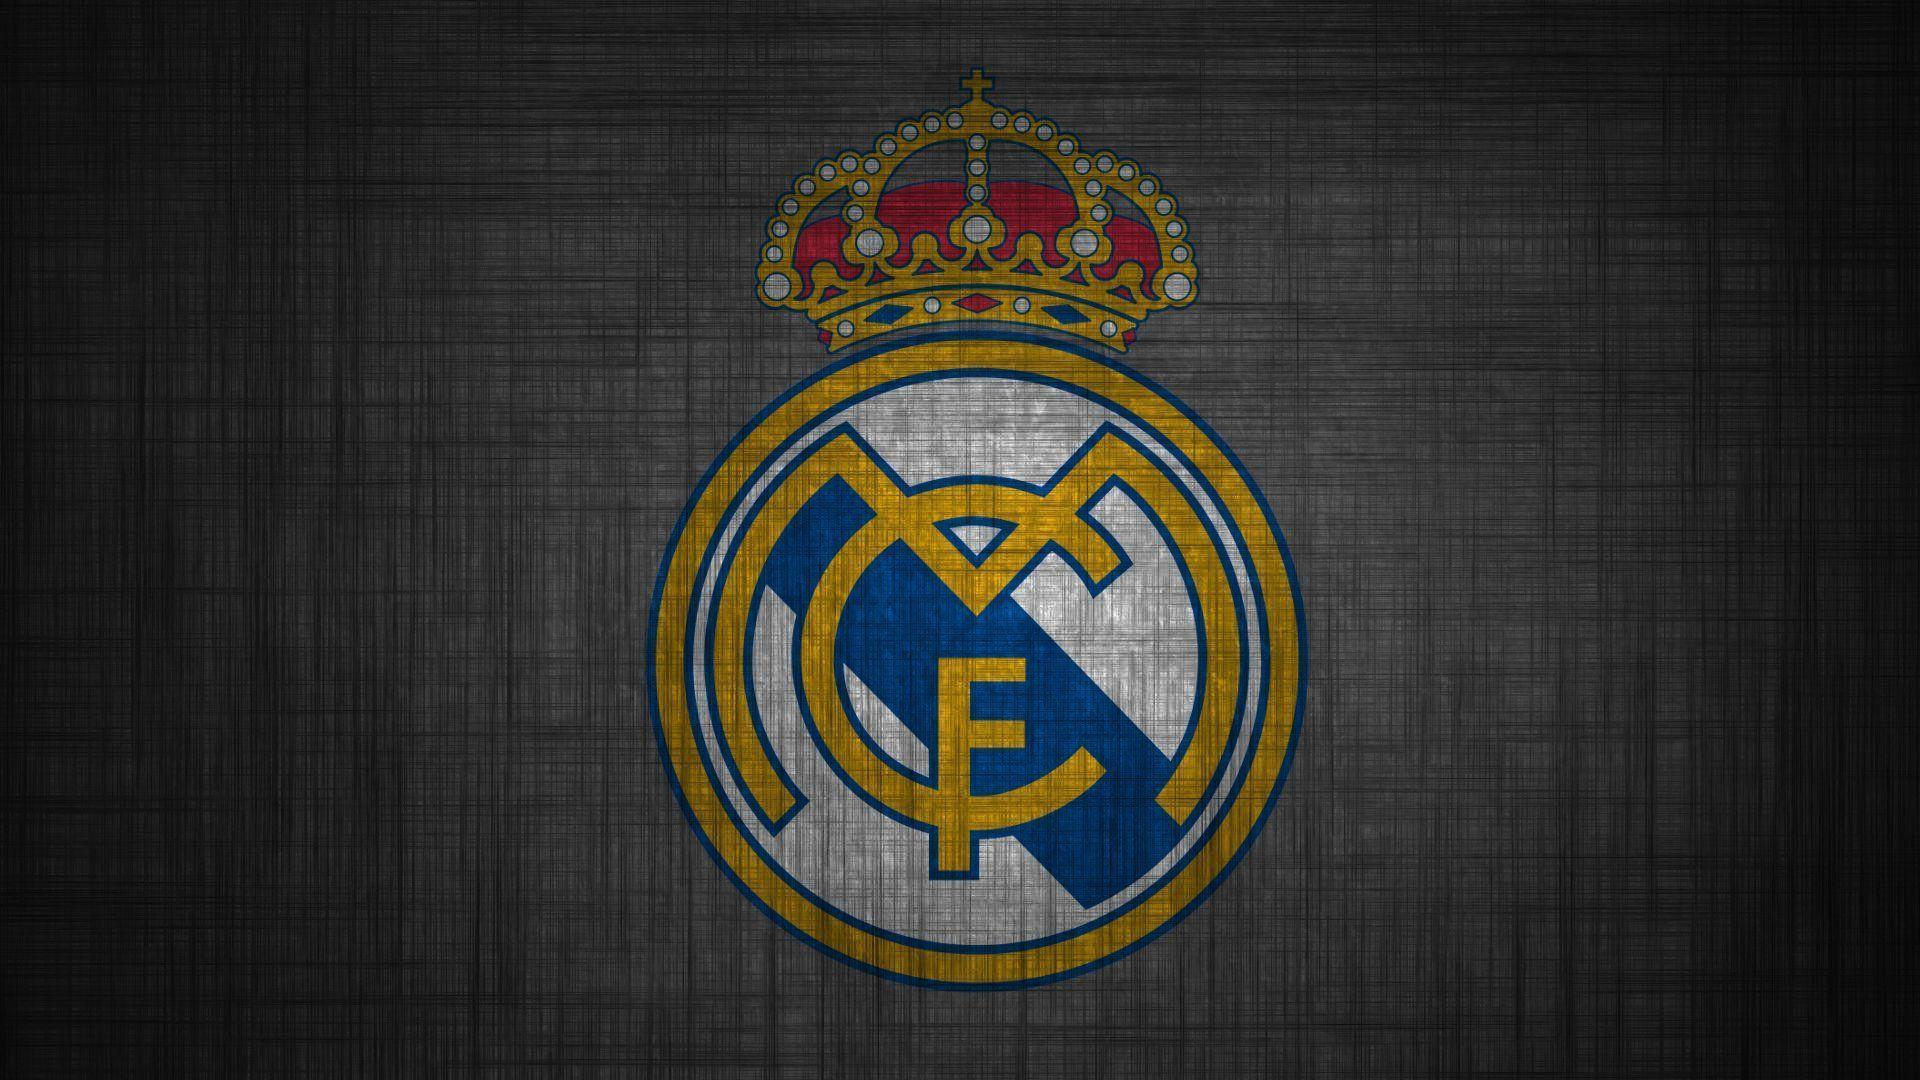 Real madrid logo wallpapers hd 2017 wallpaper cave - Real madrid pictures wallpapers 2017 ...